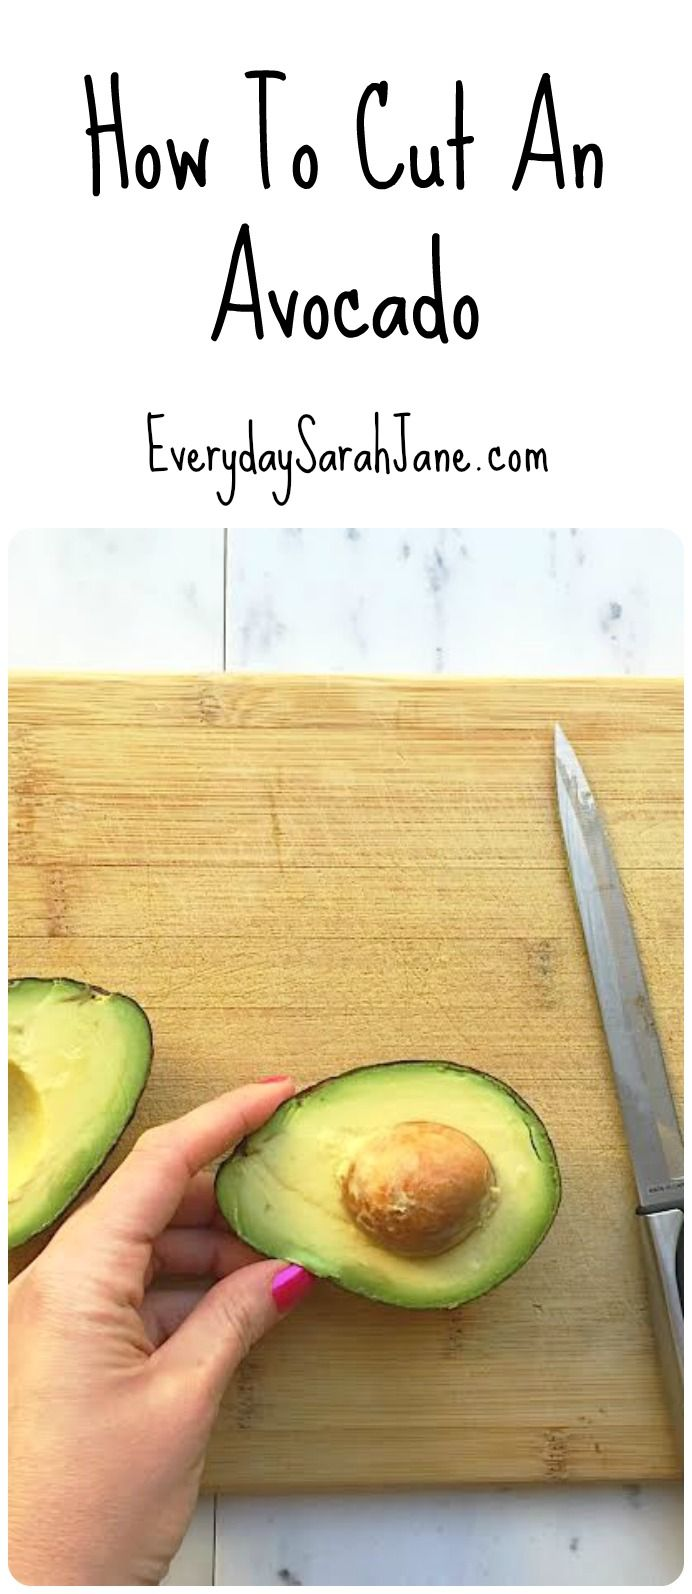 A step-by-step tutorial on how to cut and prepare an avocado XO